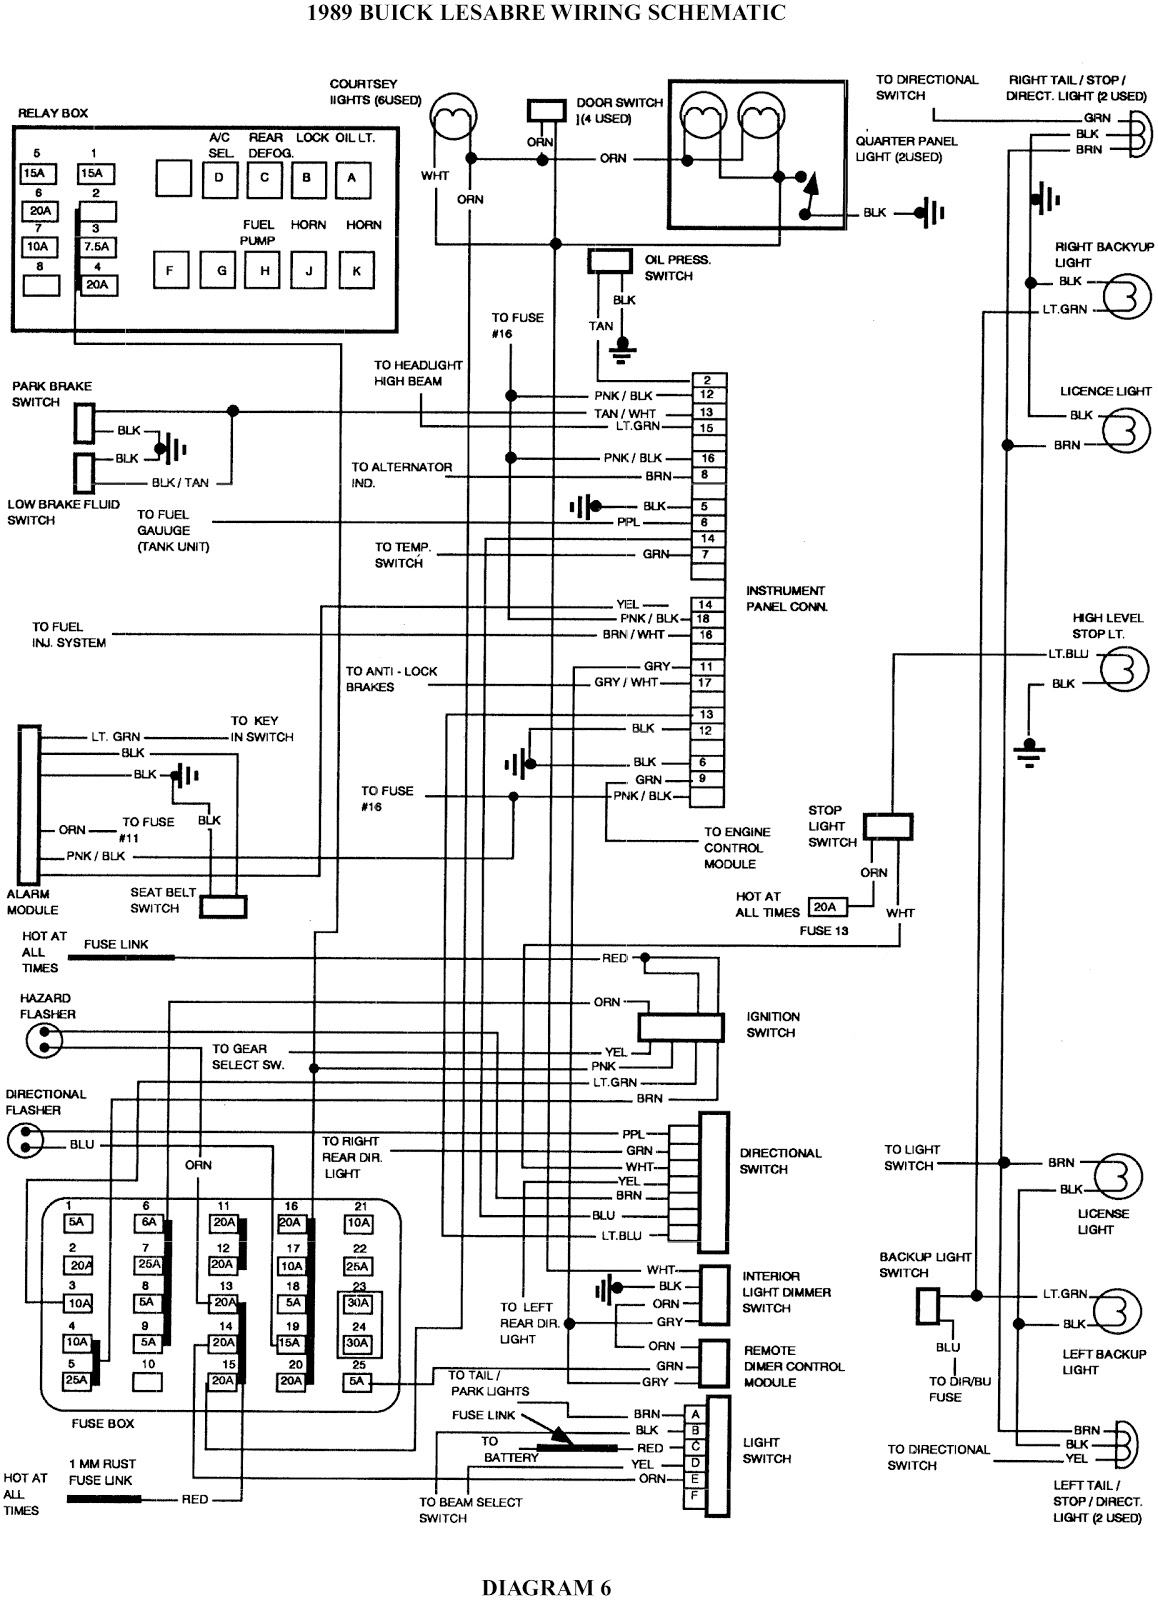 1996 s10 radio wiring diagram cat6 crossover 1989 buick lesabre schematic | diagrams solutions